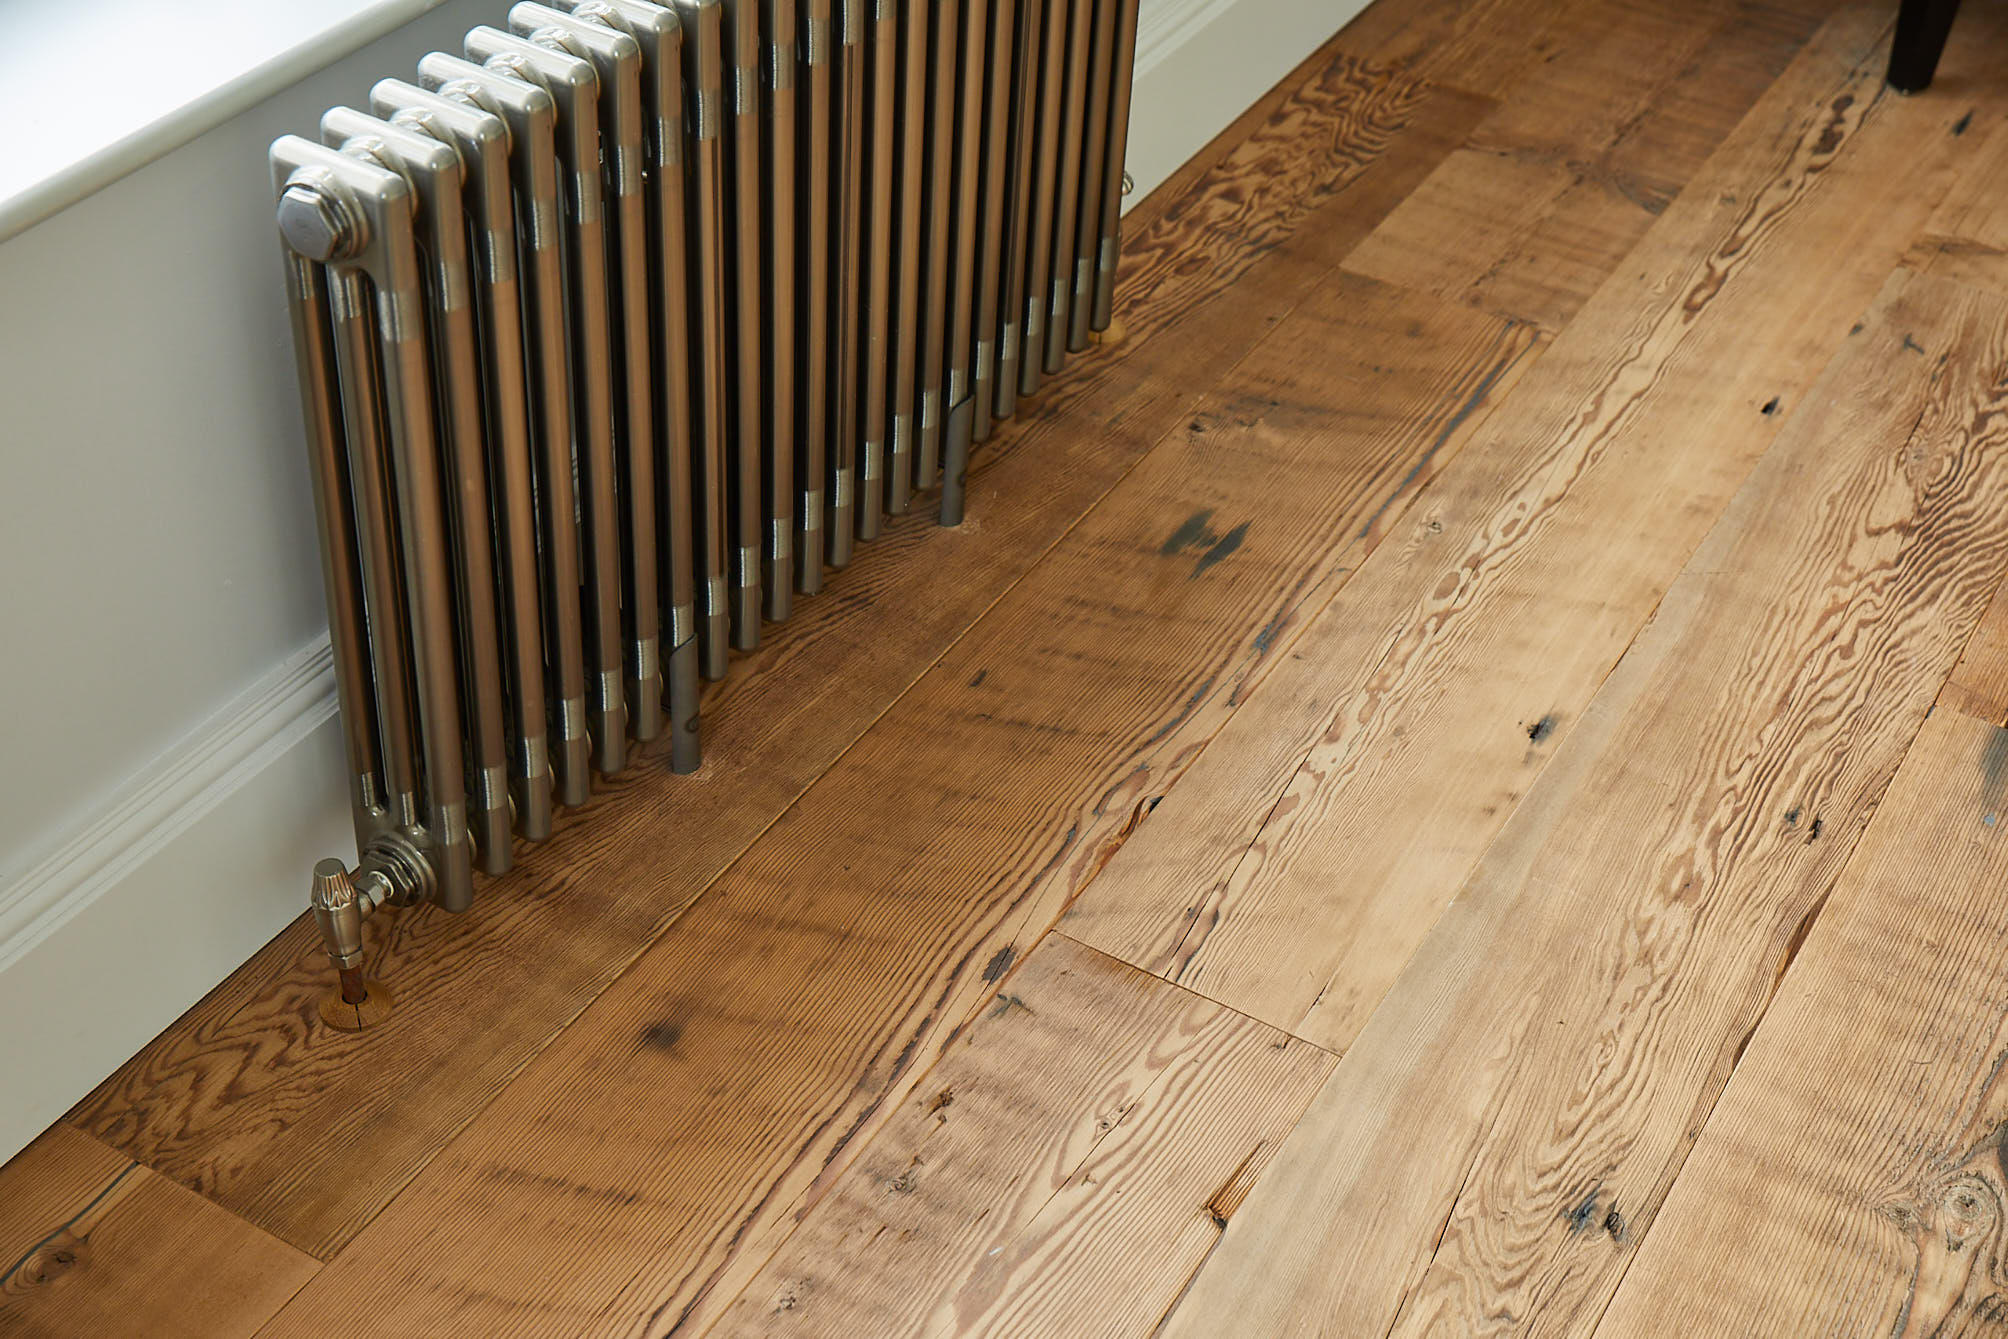 Cast iron radiator sits on reclaimed flooring